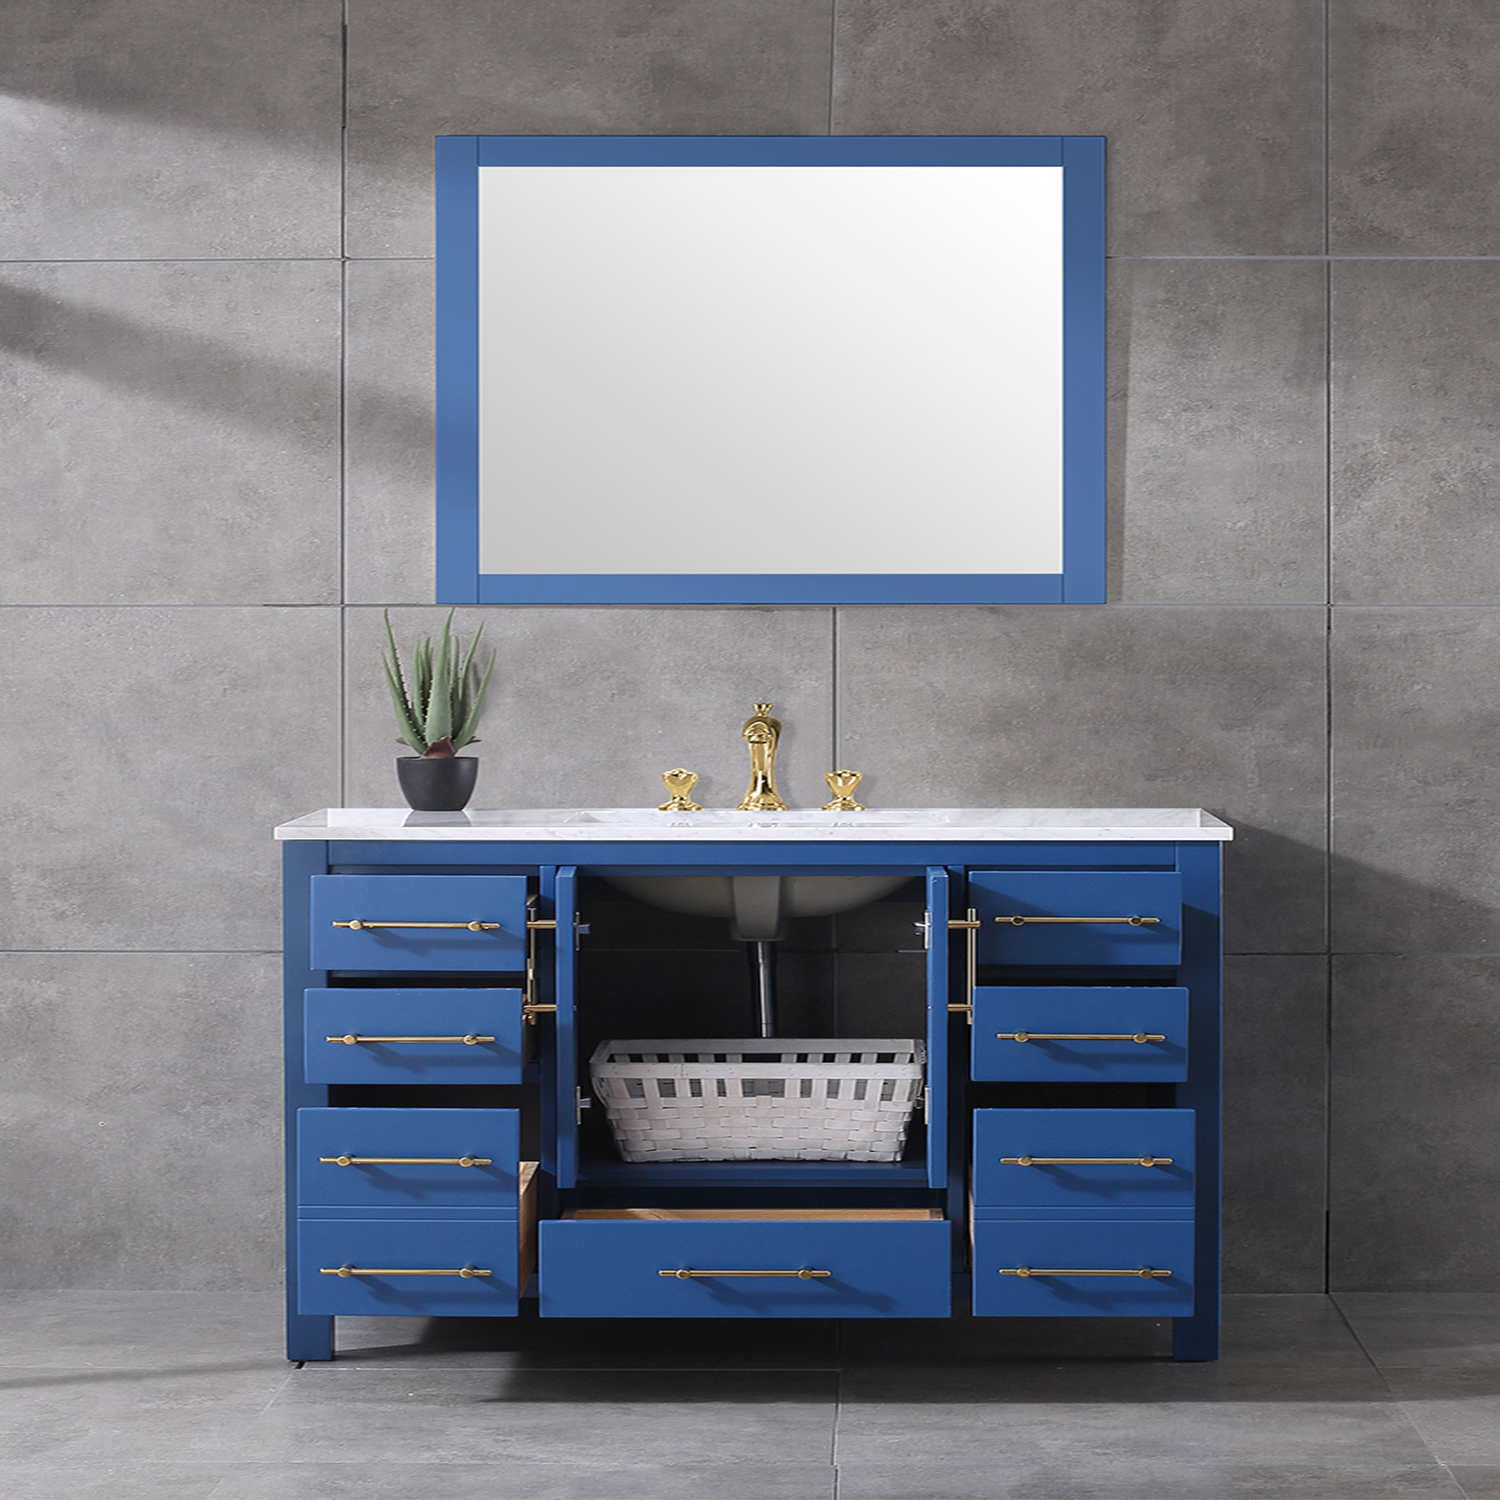 Miraculous Eviva Navy 48 Inch Deep Blue Bathroom Vanity With White Carrera Counter Top And White Undermount Porcelain Sink Download Free Architecture Designs Scobabritishbridgeorg